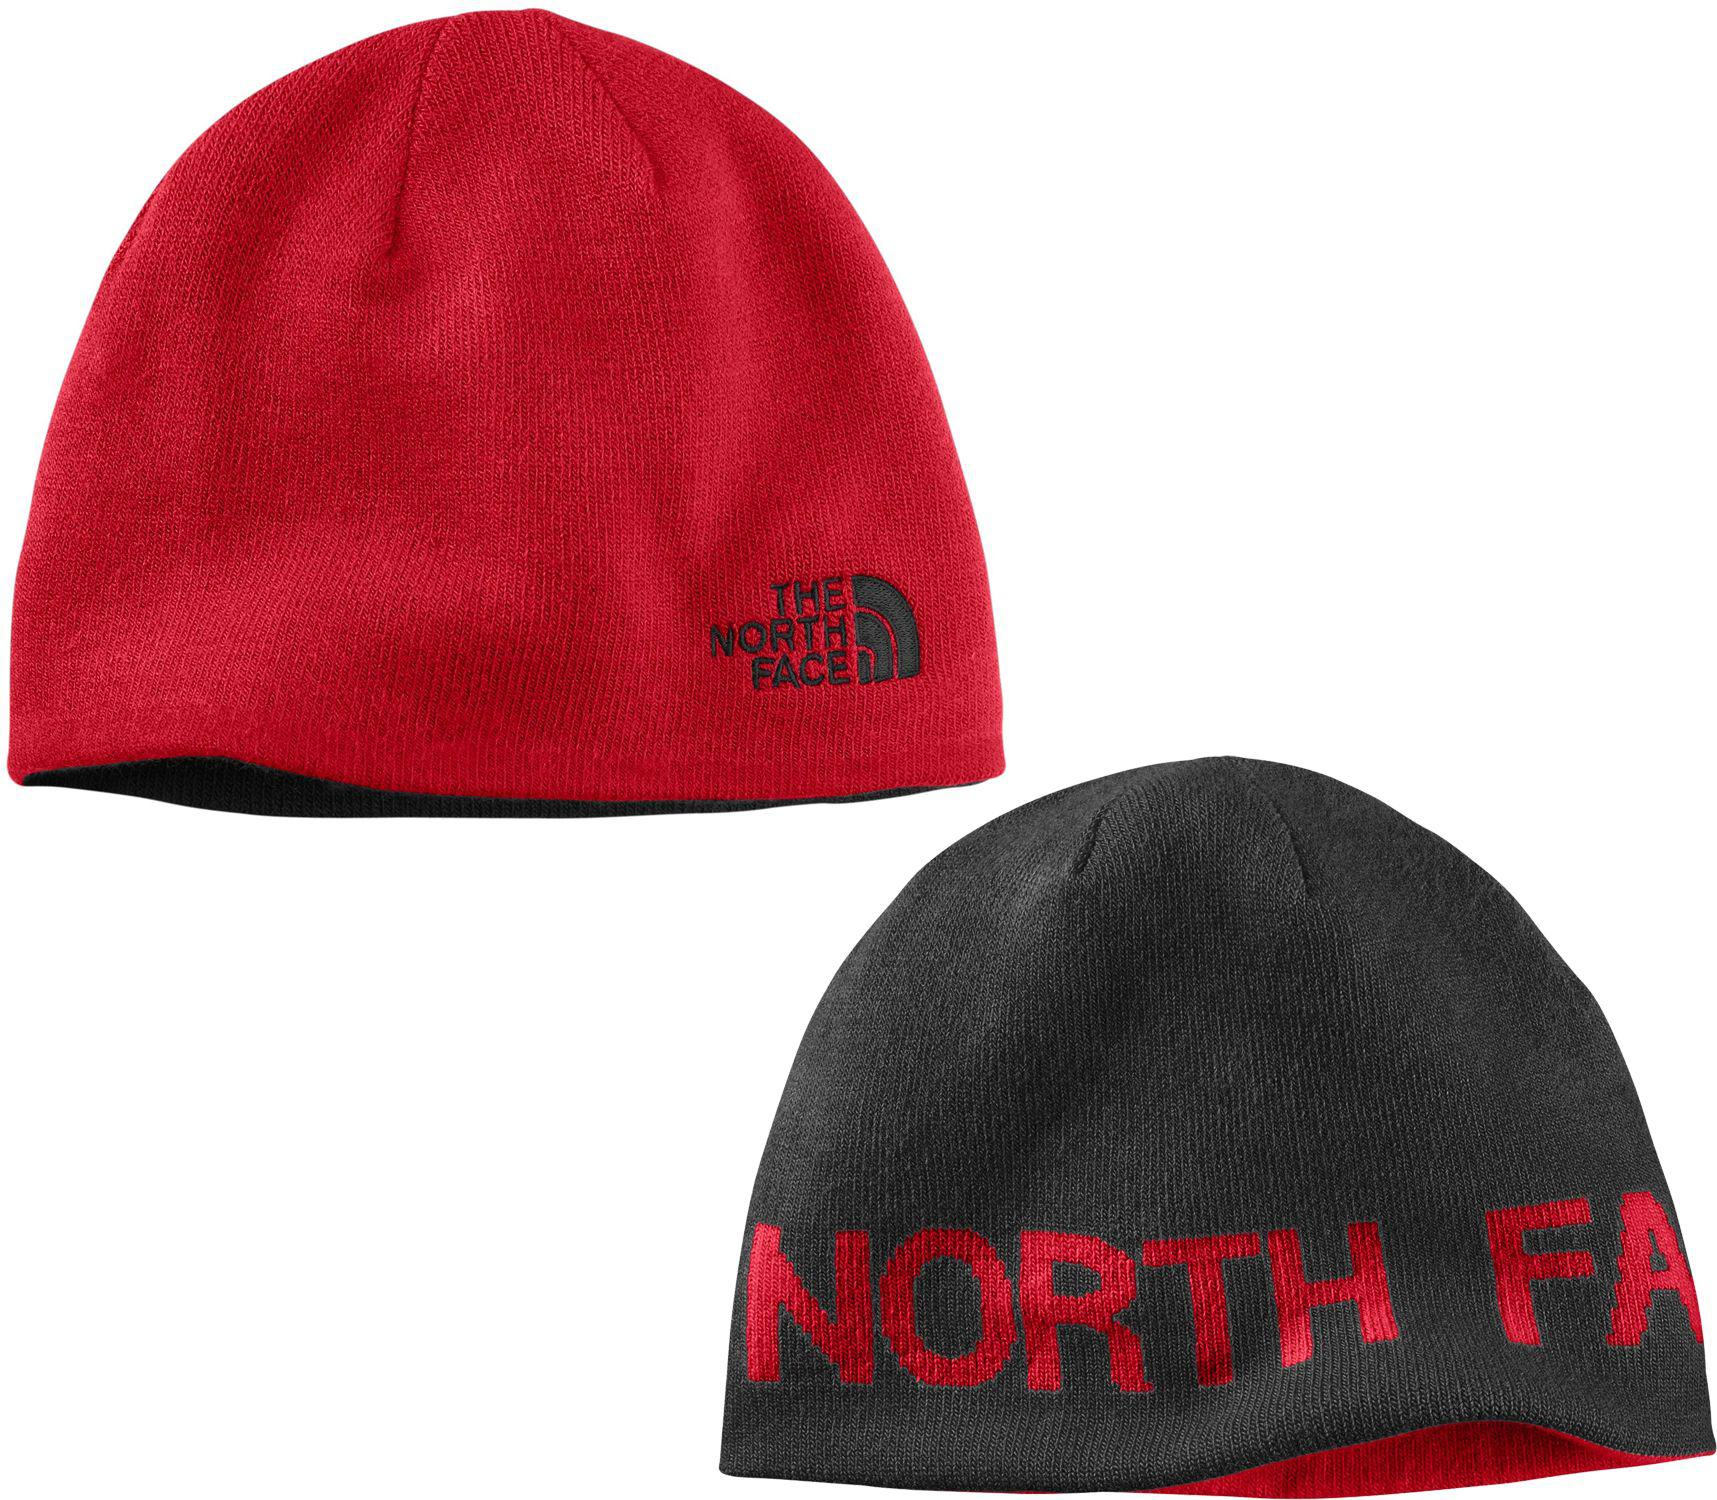 Lyst - The North Face Reversible Tnf Banner Beanie in Red for Men 38f21f8d978